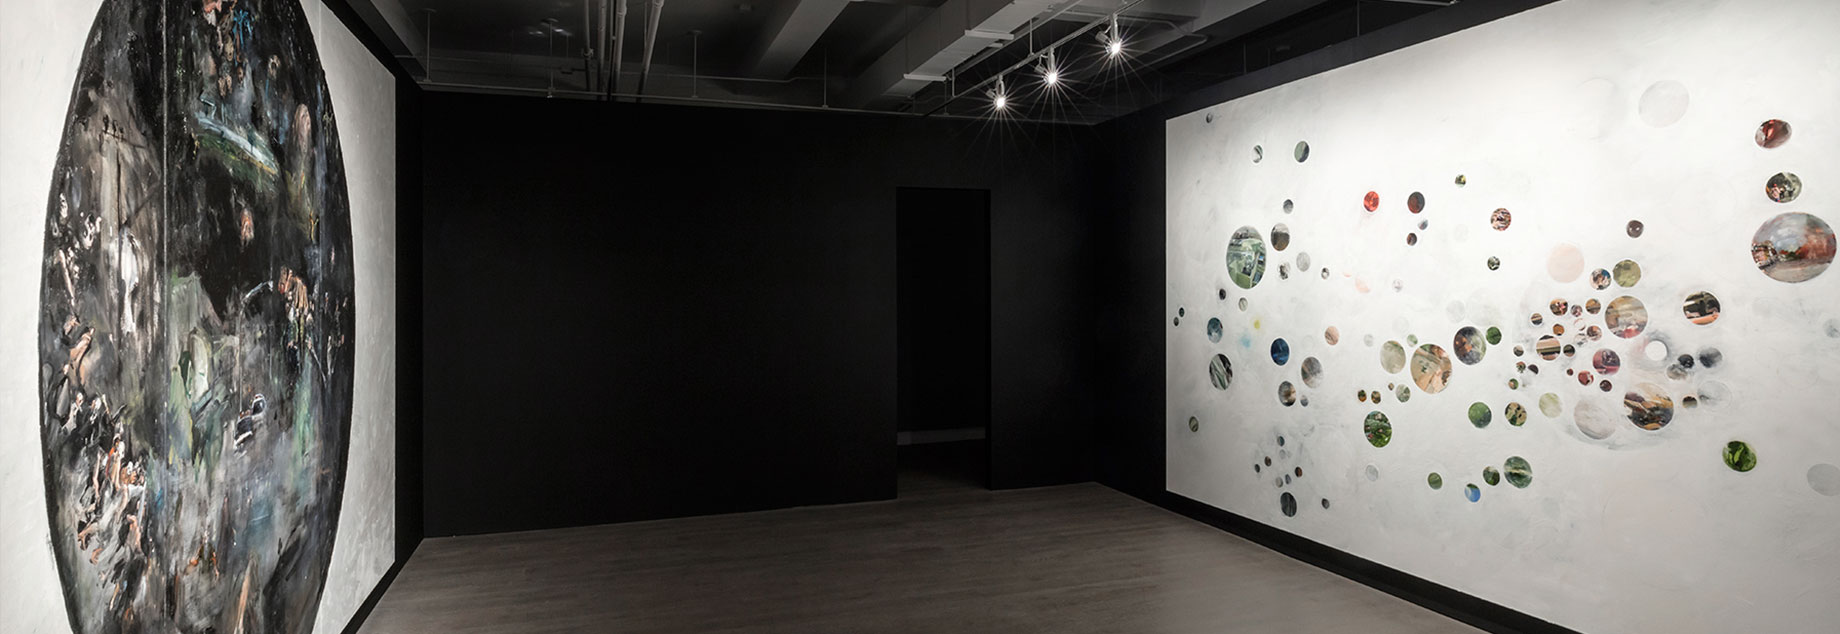 Howard Podeswa, A Brief History, installation view, Heaven (left), Hell (right), 2015.